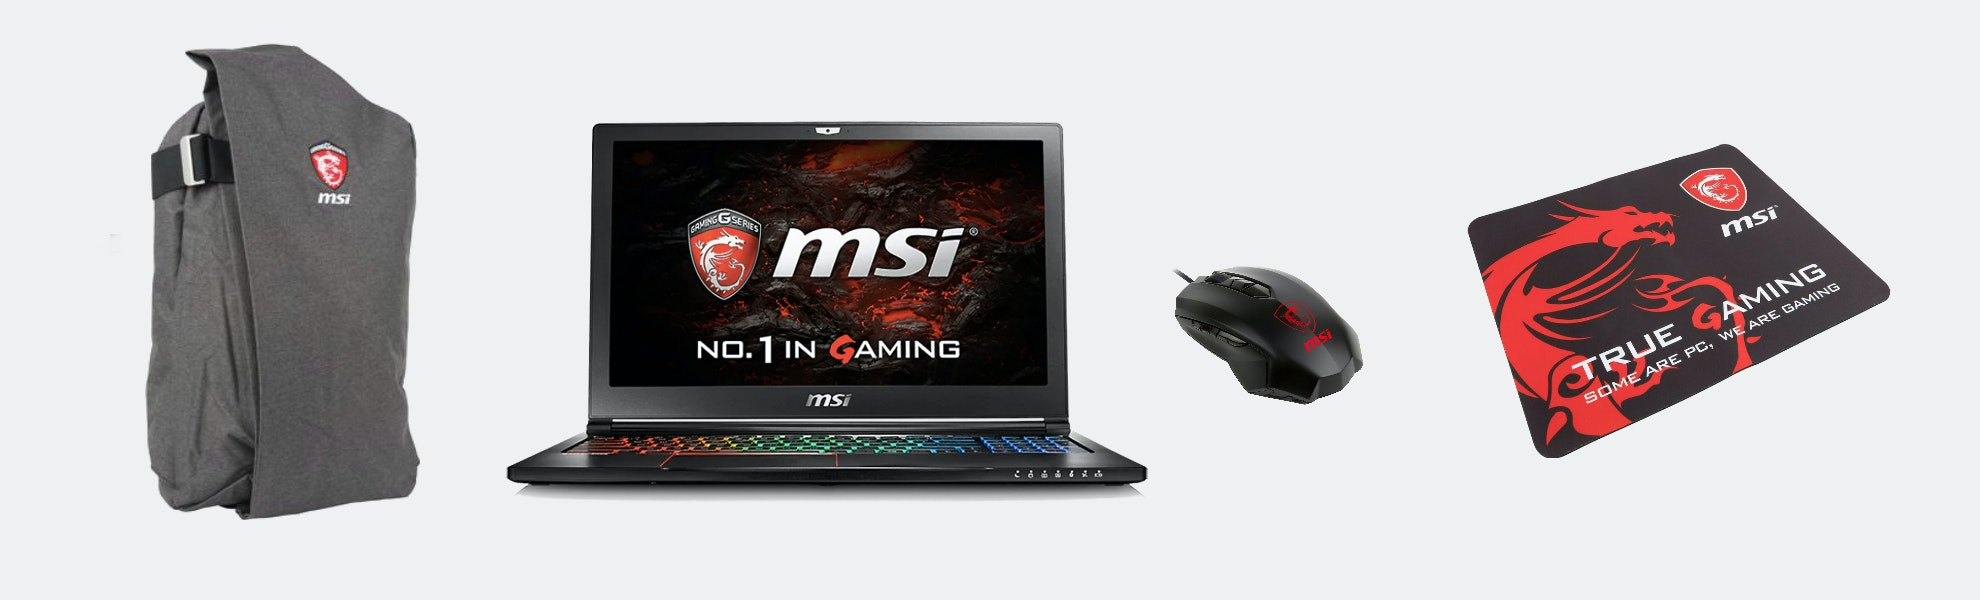 MSI GS63VR Stealth Pro-422 Gaming Notebook Bundle